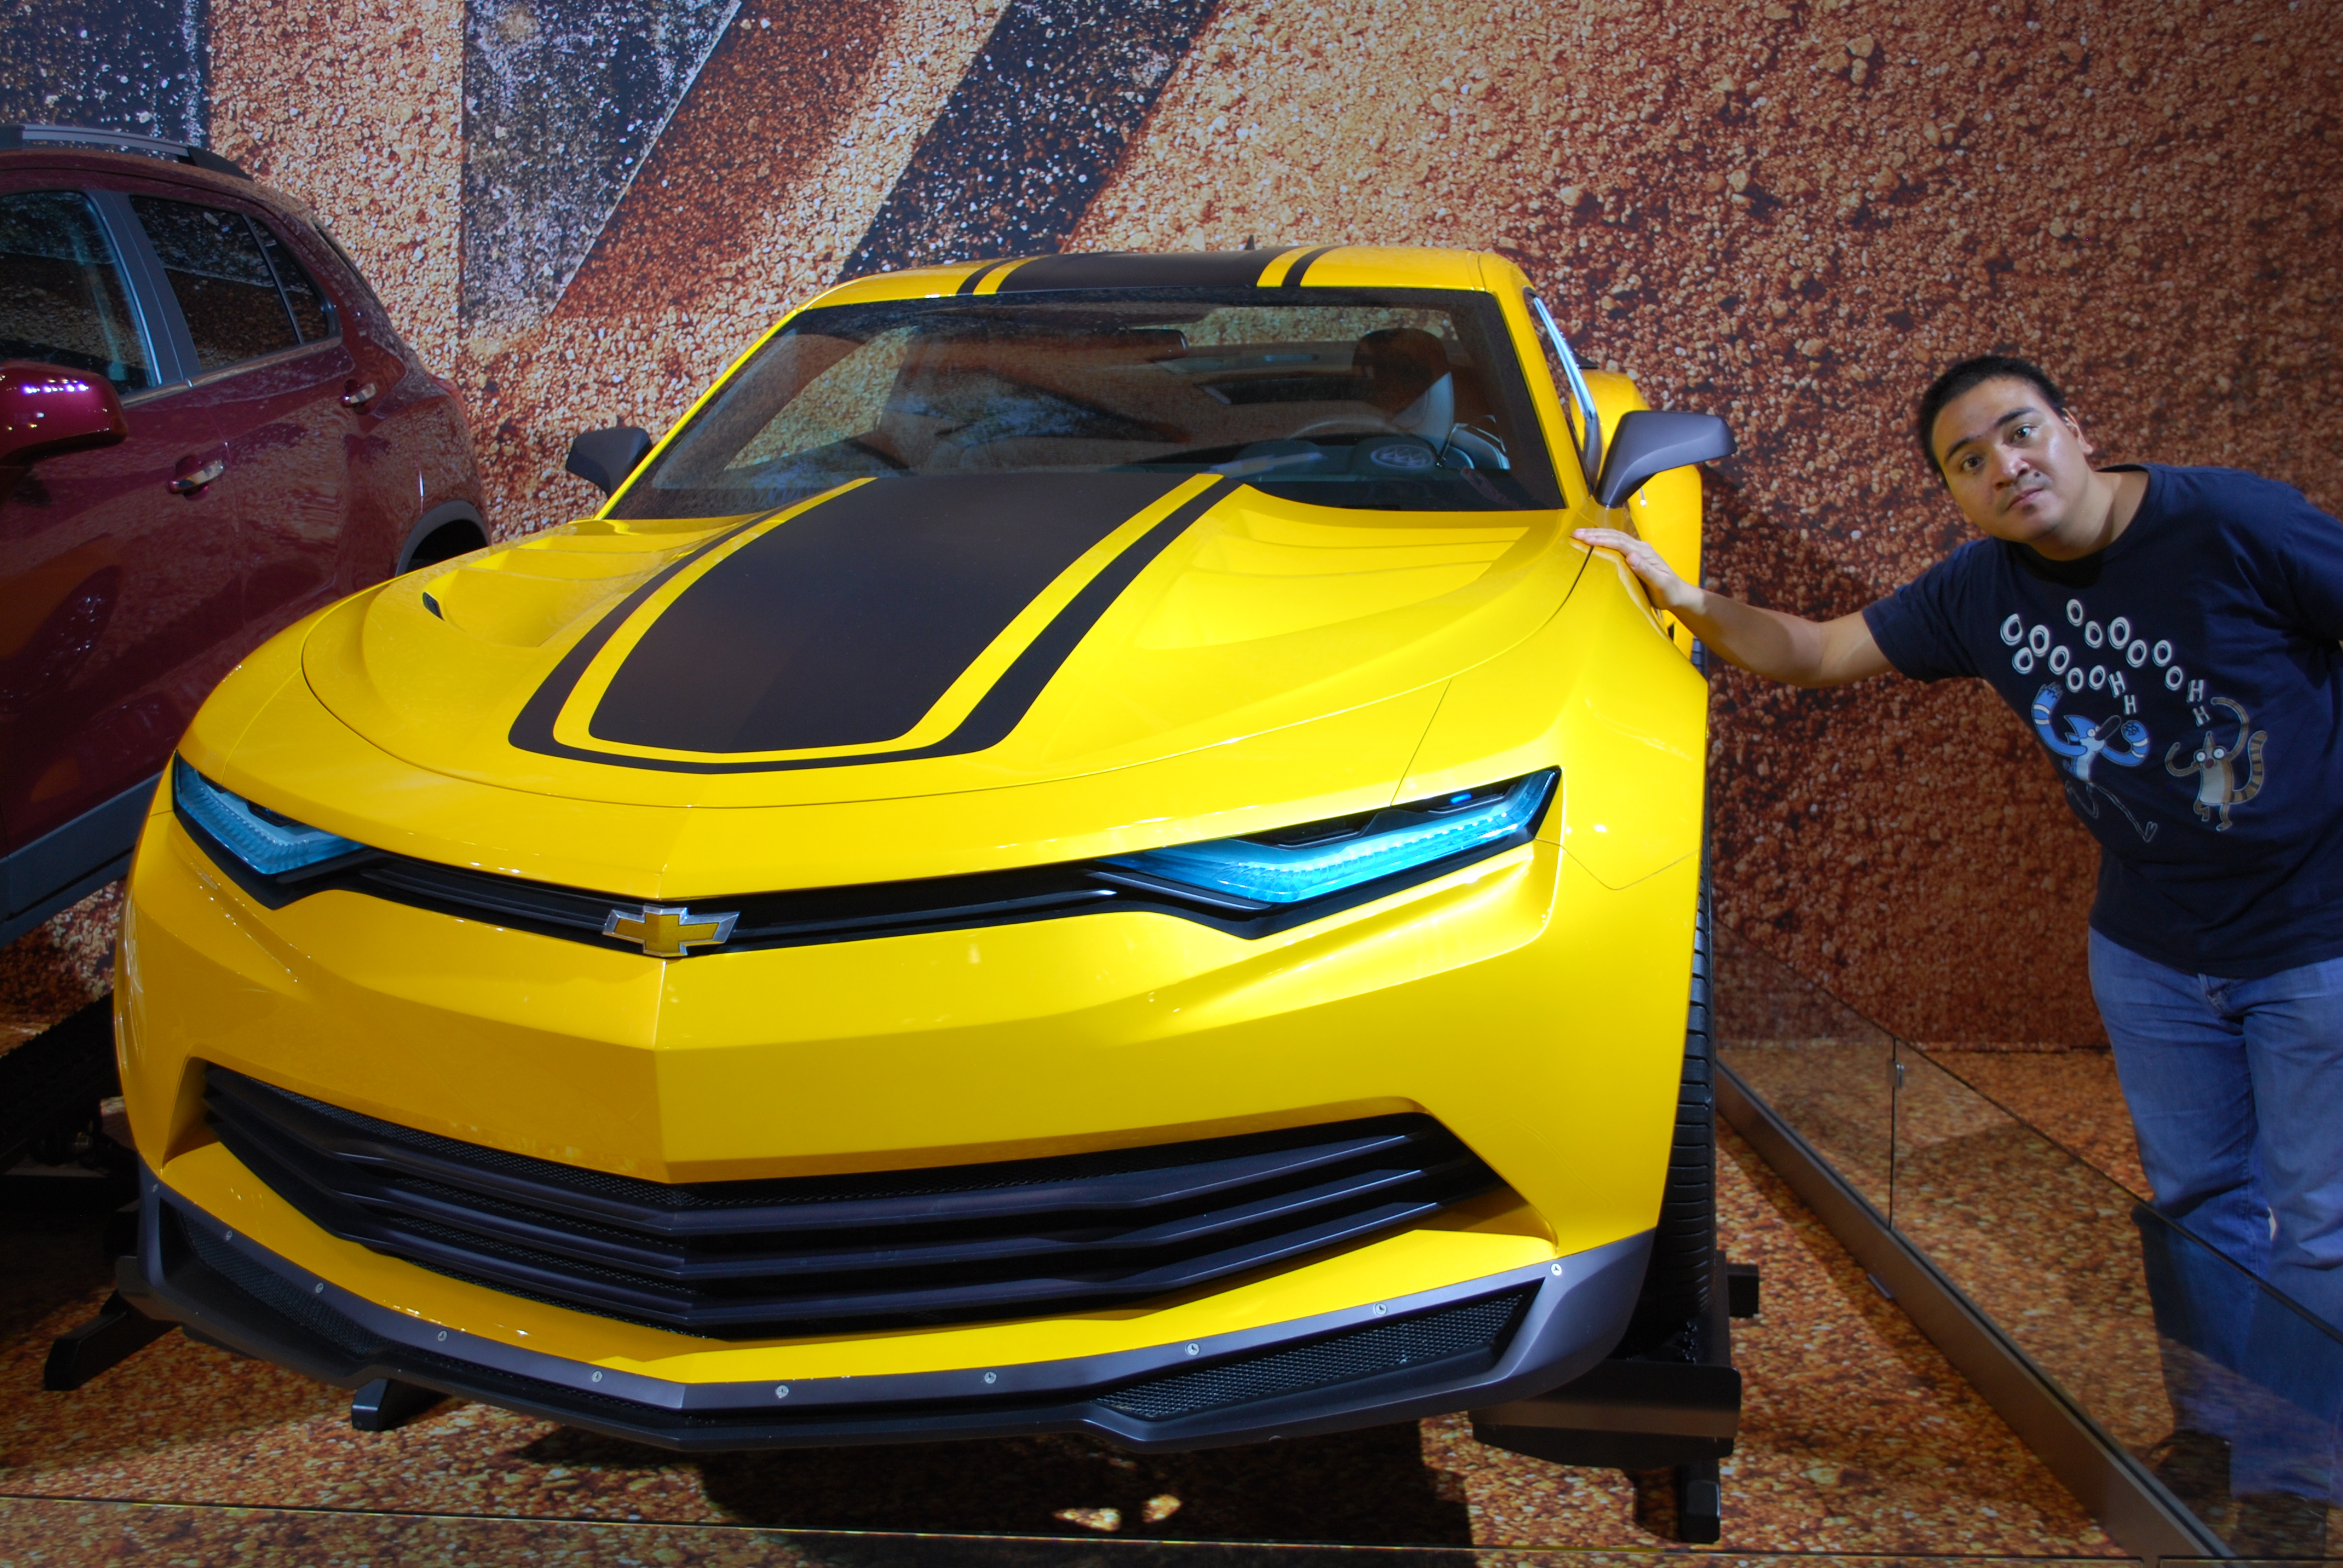 transformers 4 bumblebee camaro v by hardrocker78 on. Cars Review. Best American Auto & Cars Review